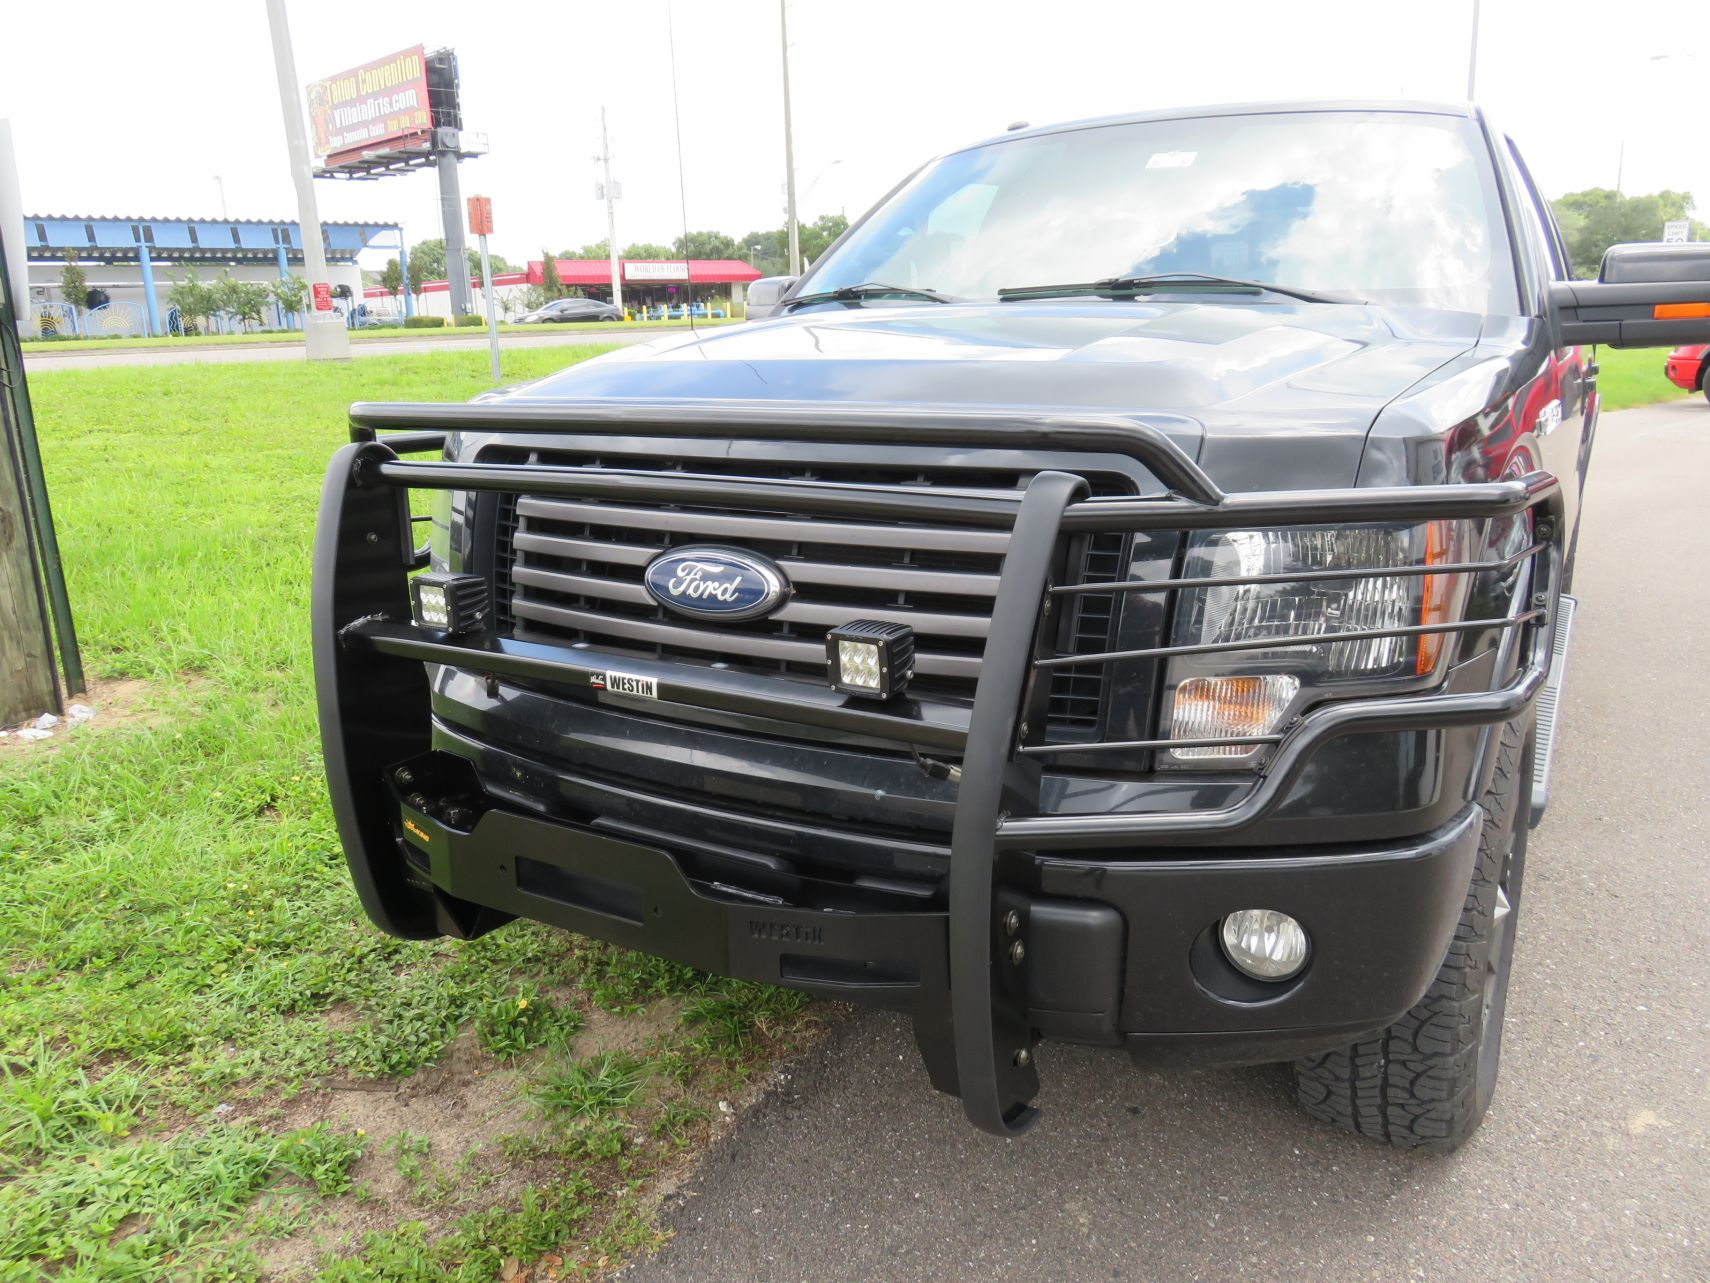 2014 black ford f150 westin grille guard TopperKING TopperKING